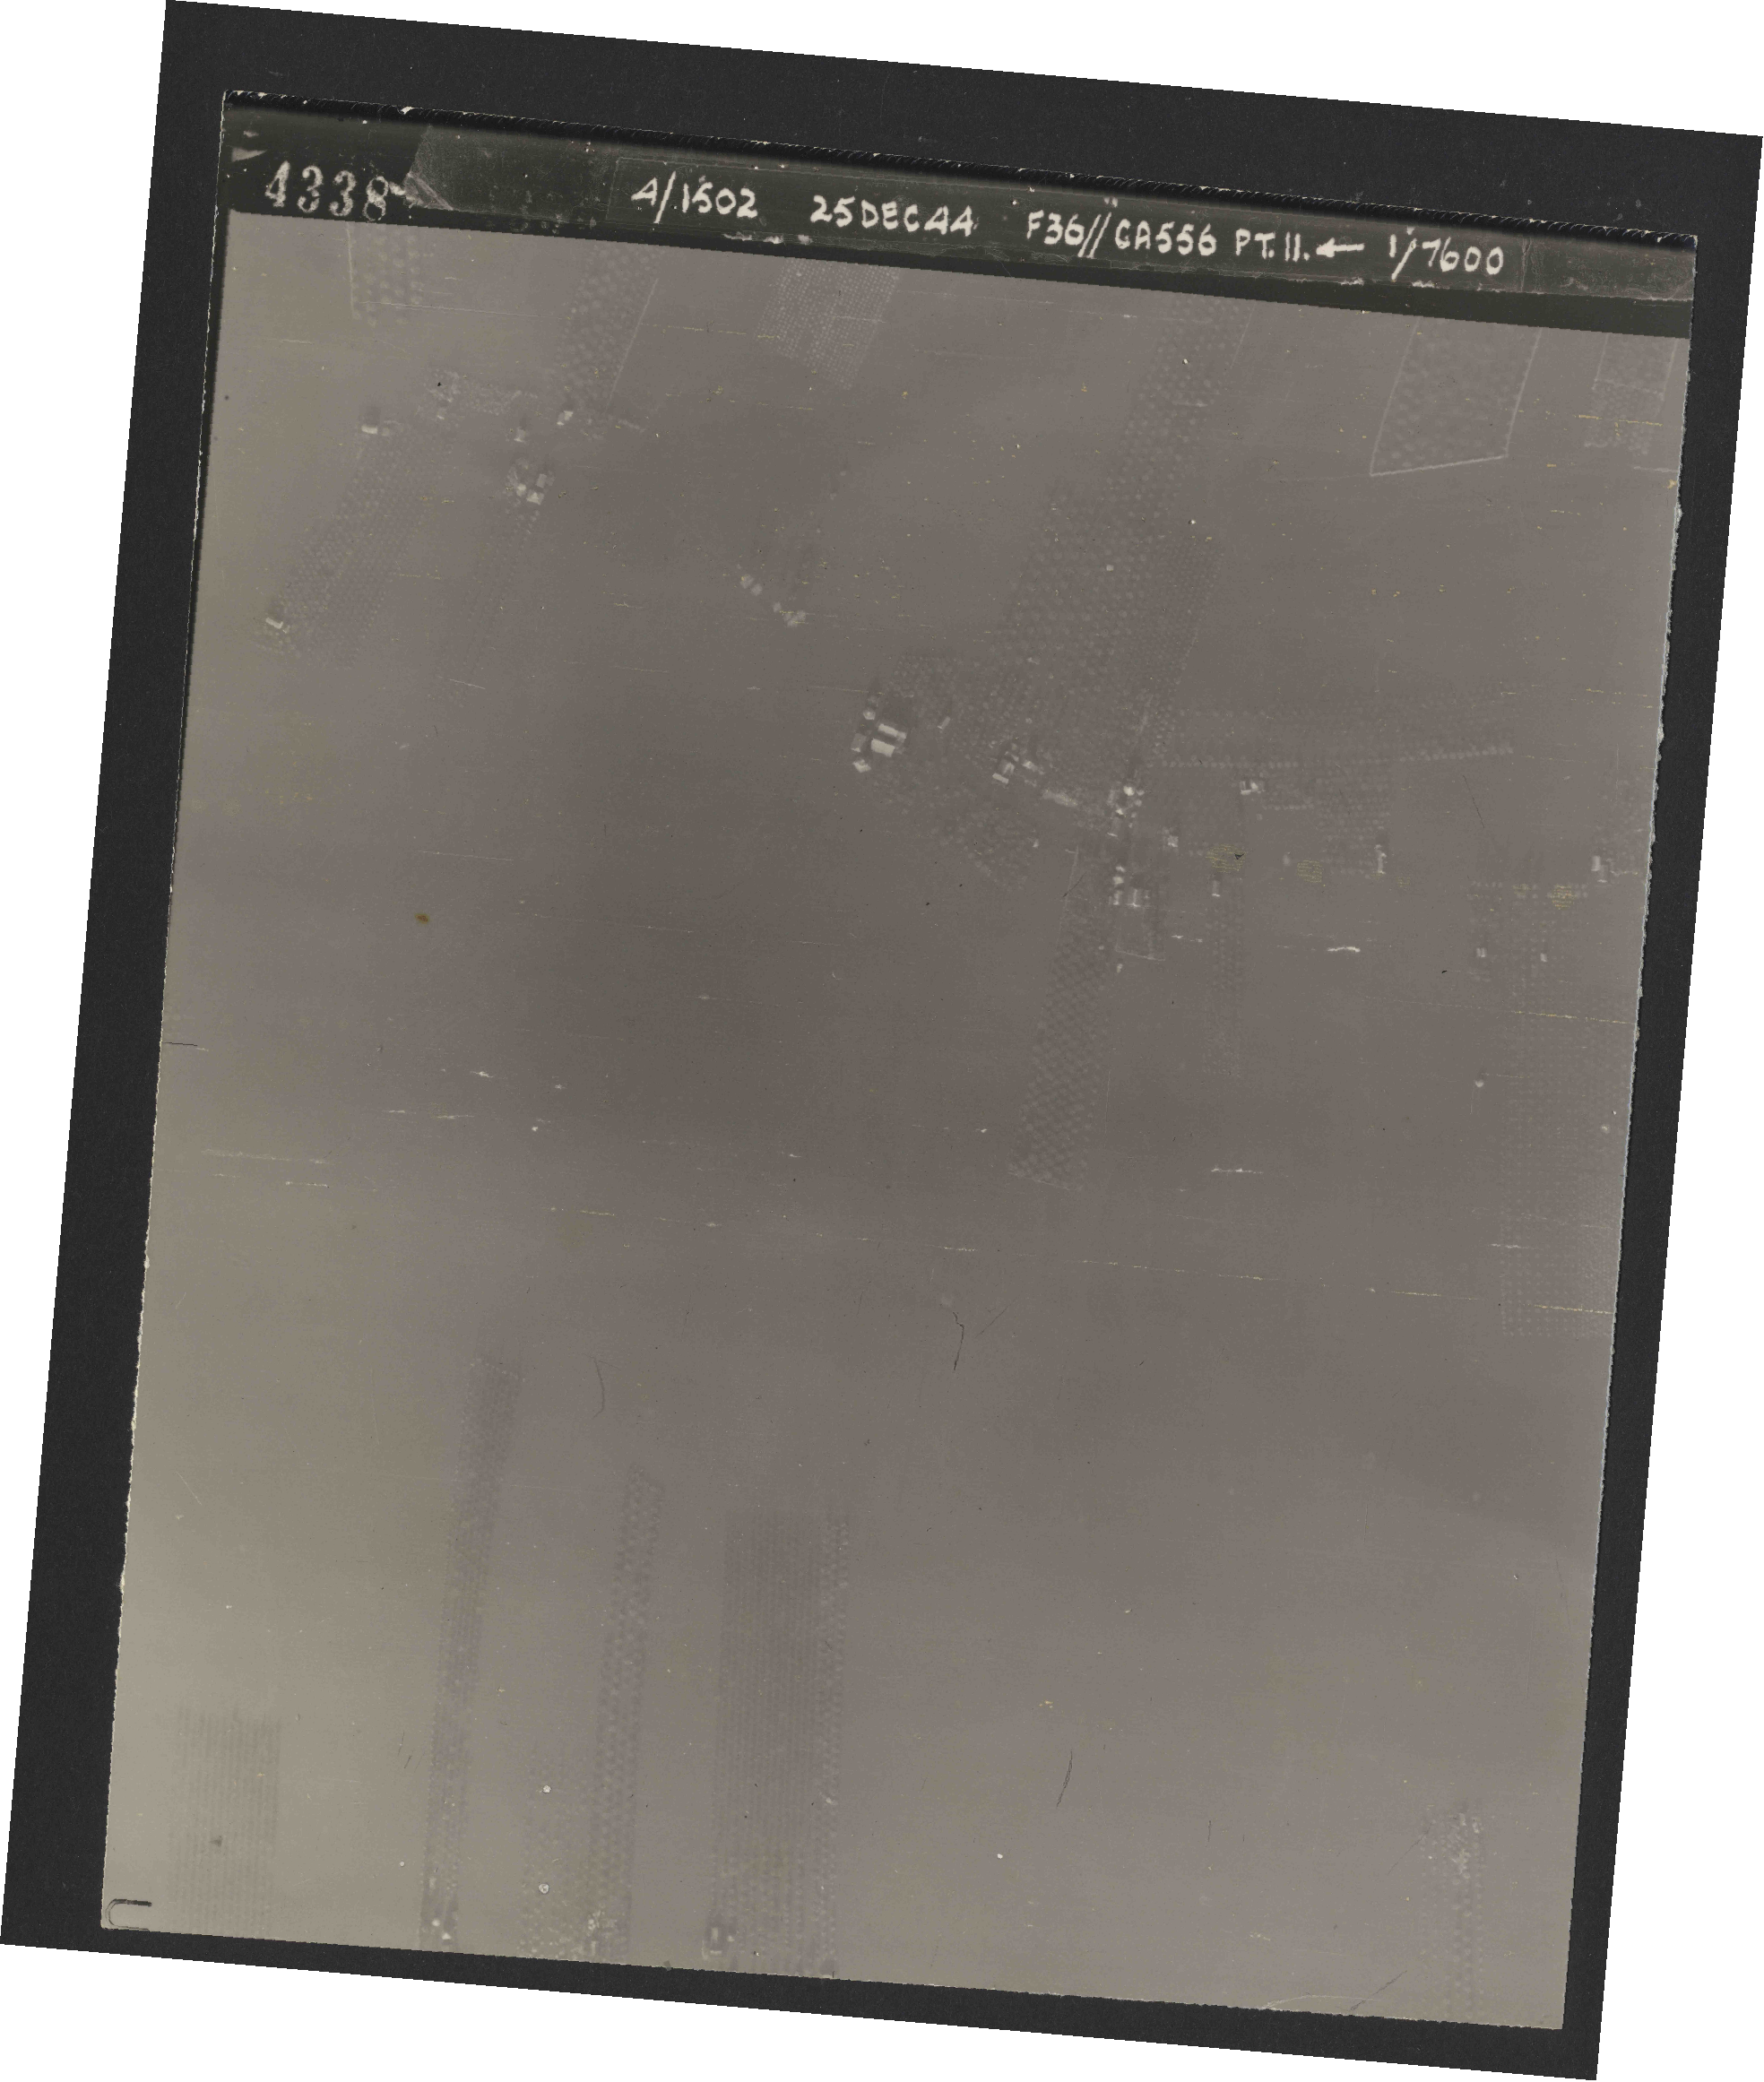 Collection RAF aerial photos 1940-1945 - flight 306, run 11, photo 4338